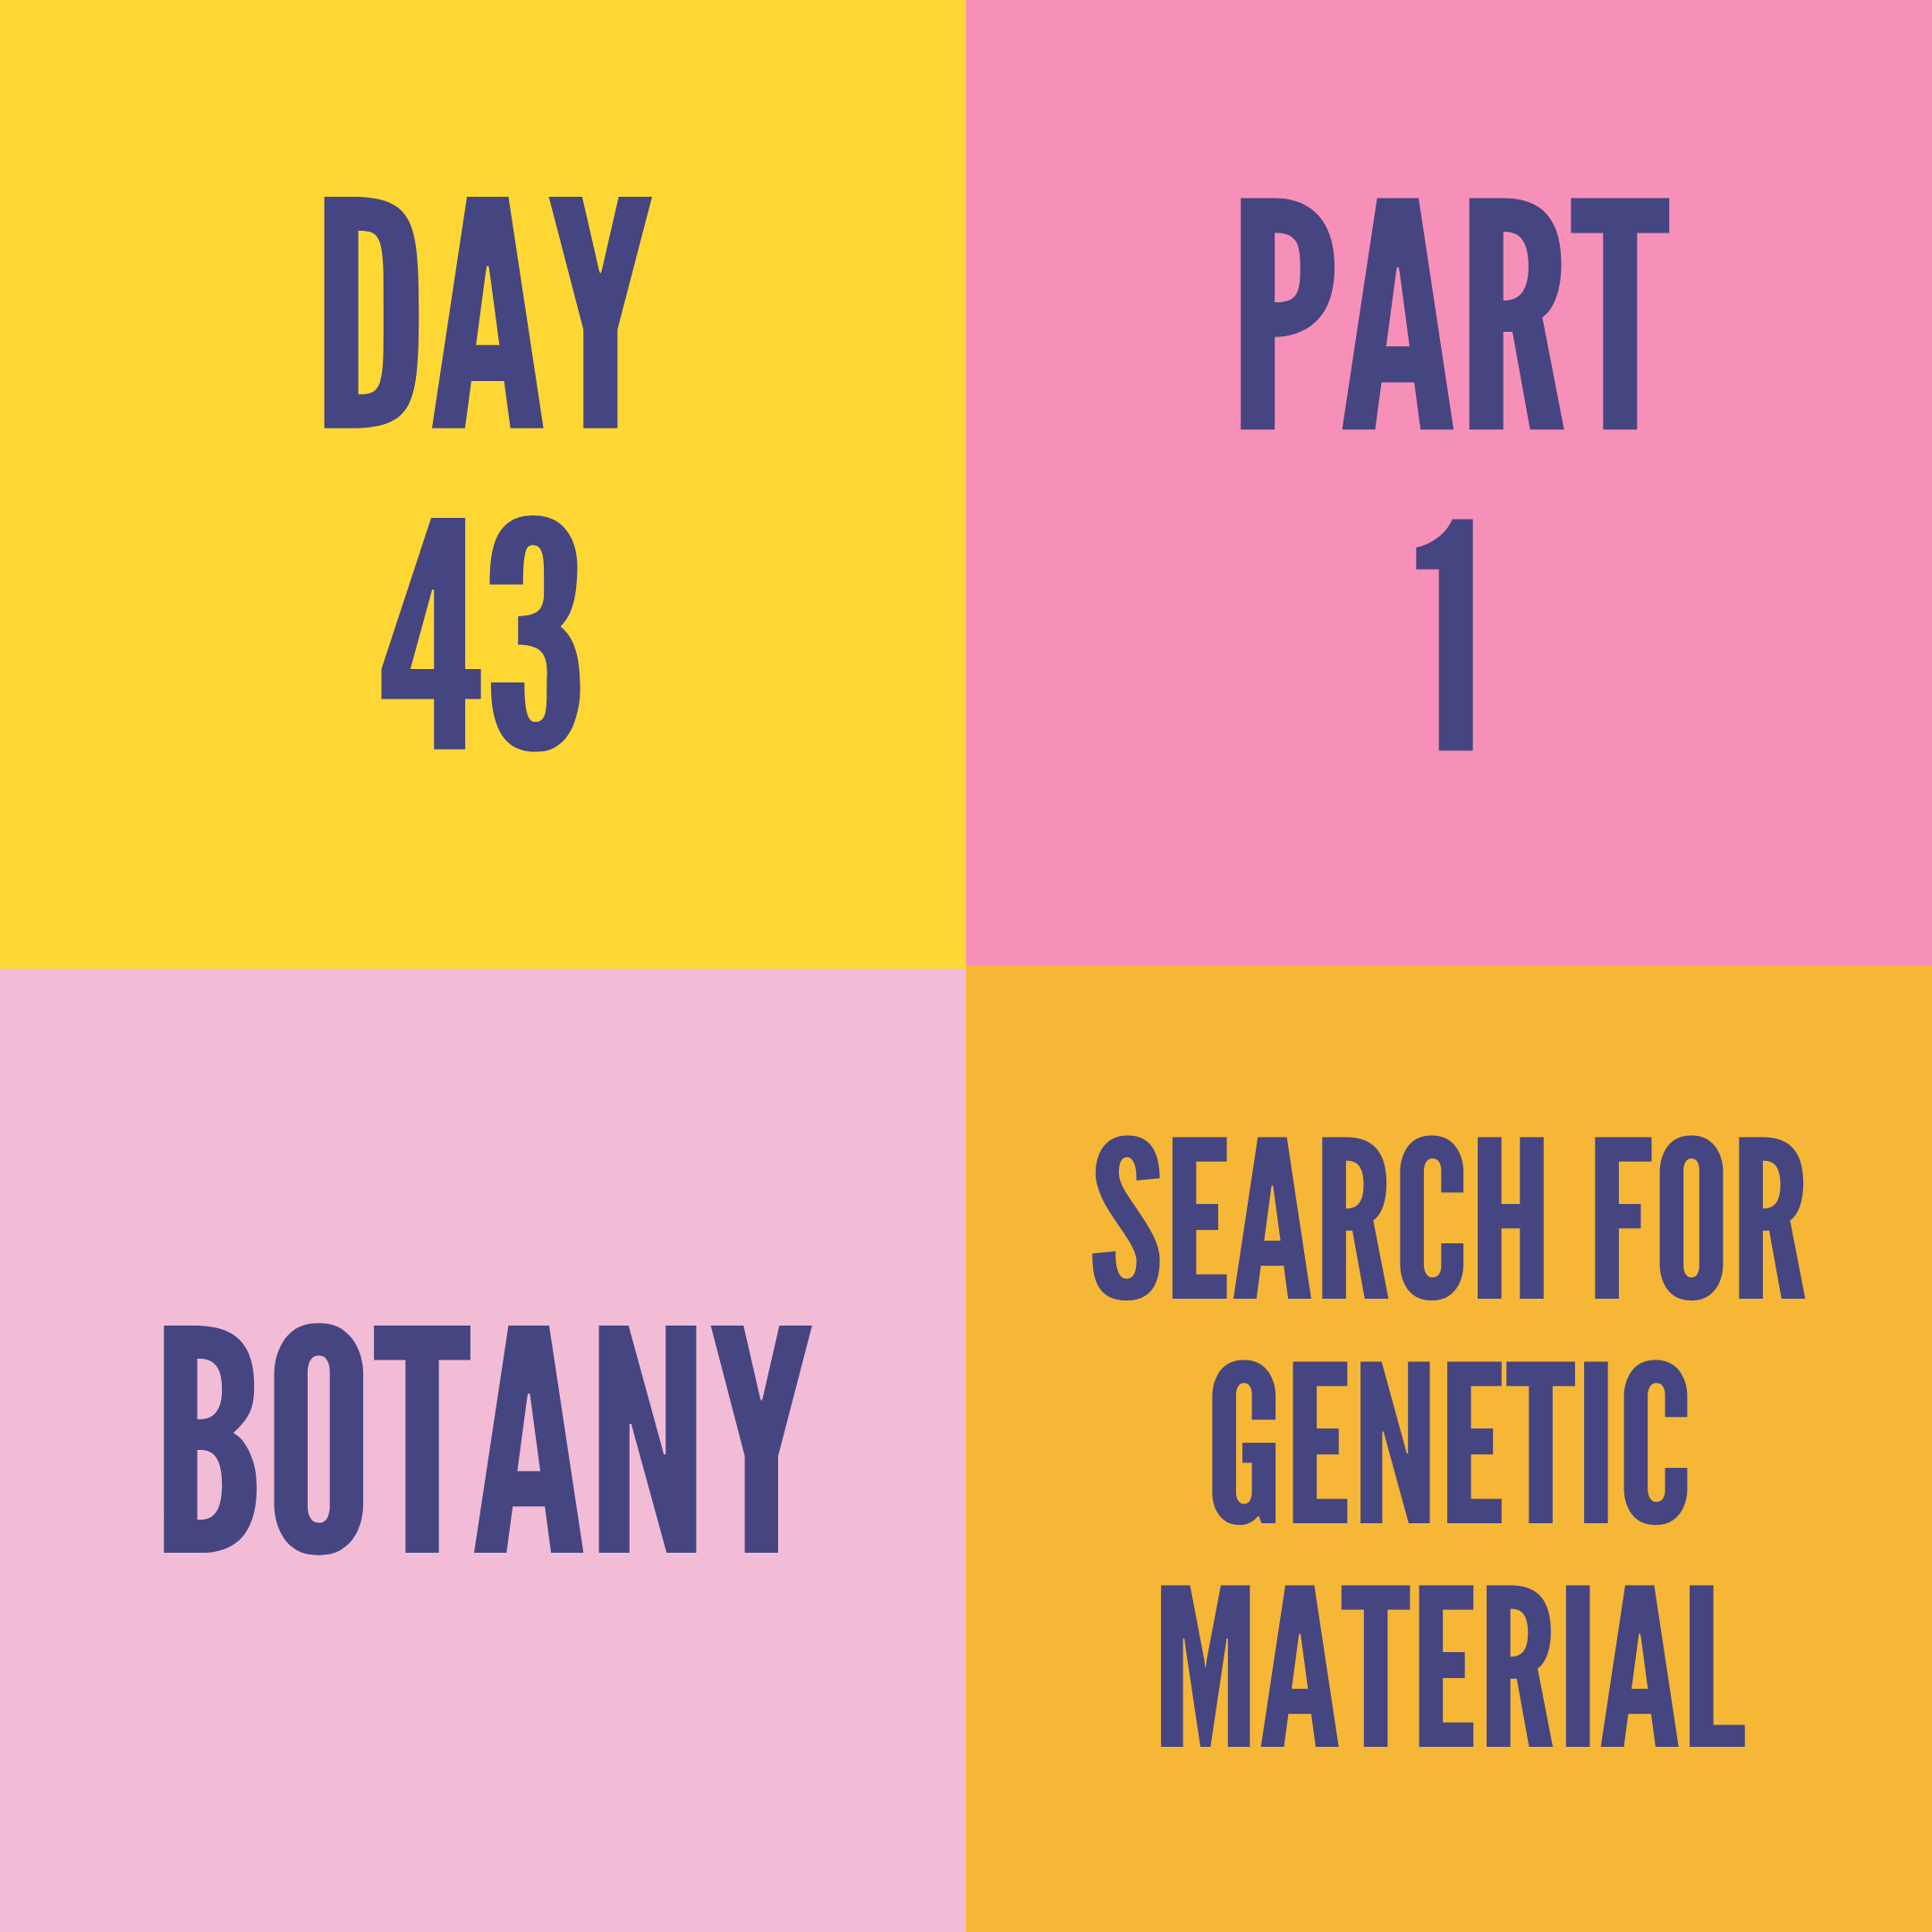 DAY-43 PART-1 SEARCH FOR GENETIC MATERIAL